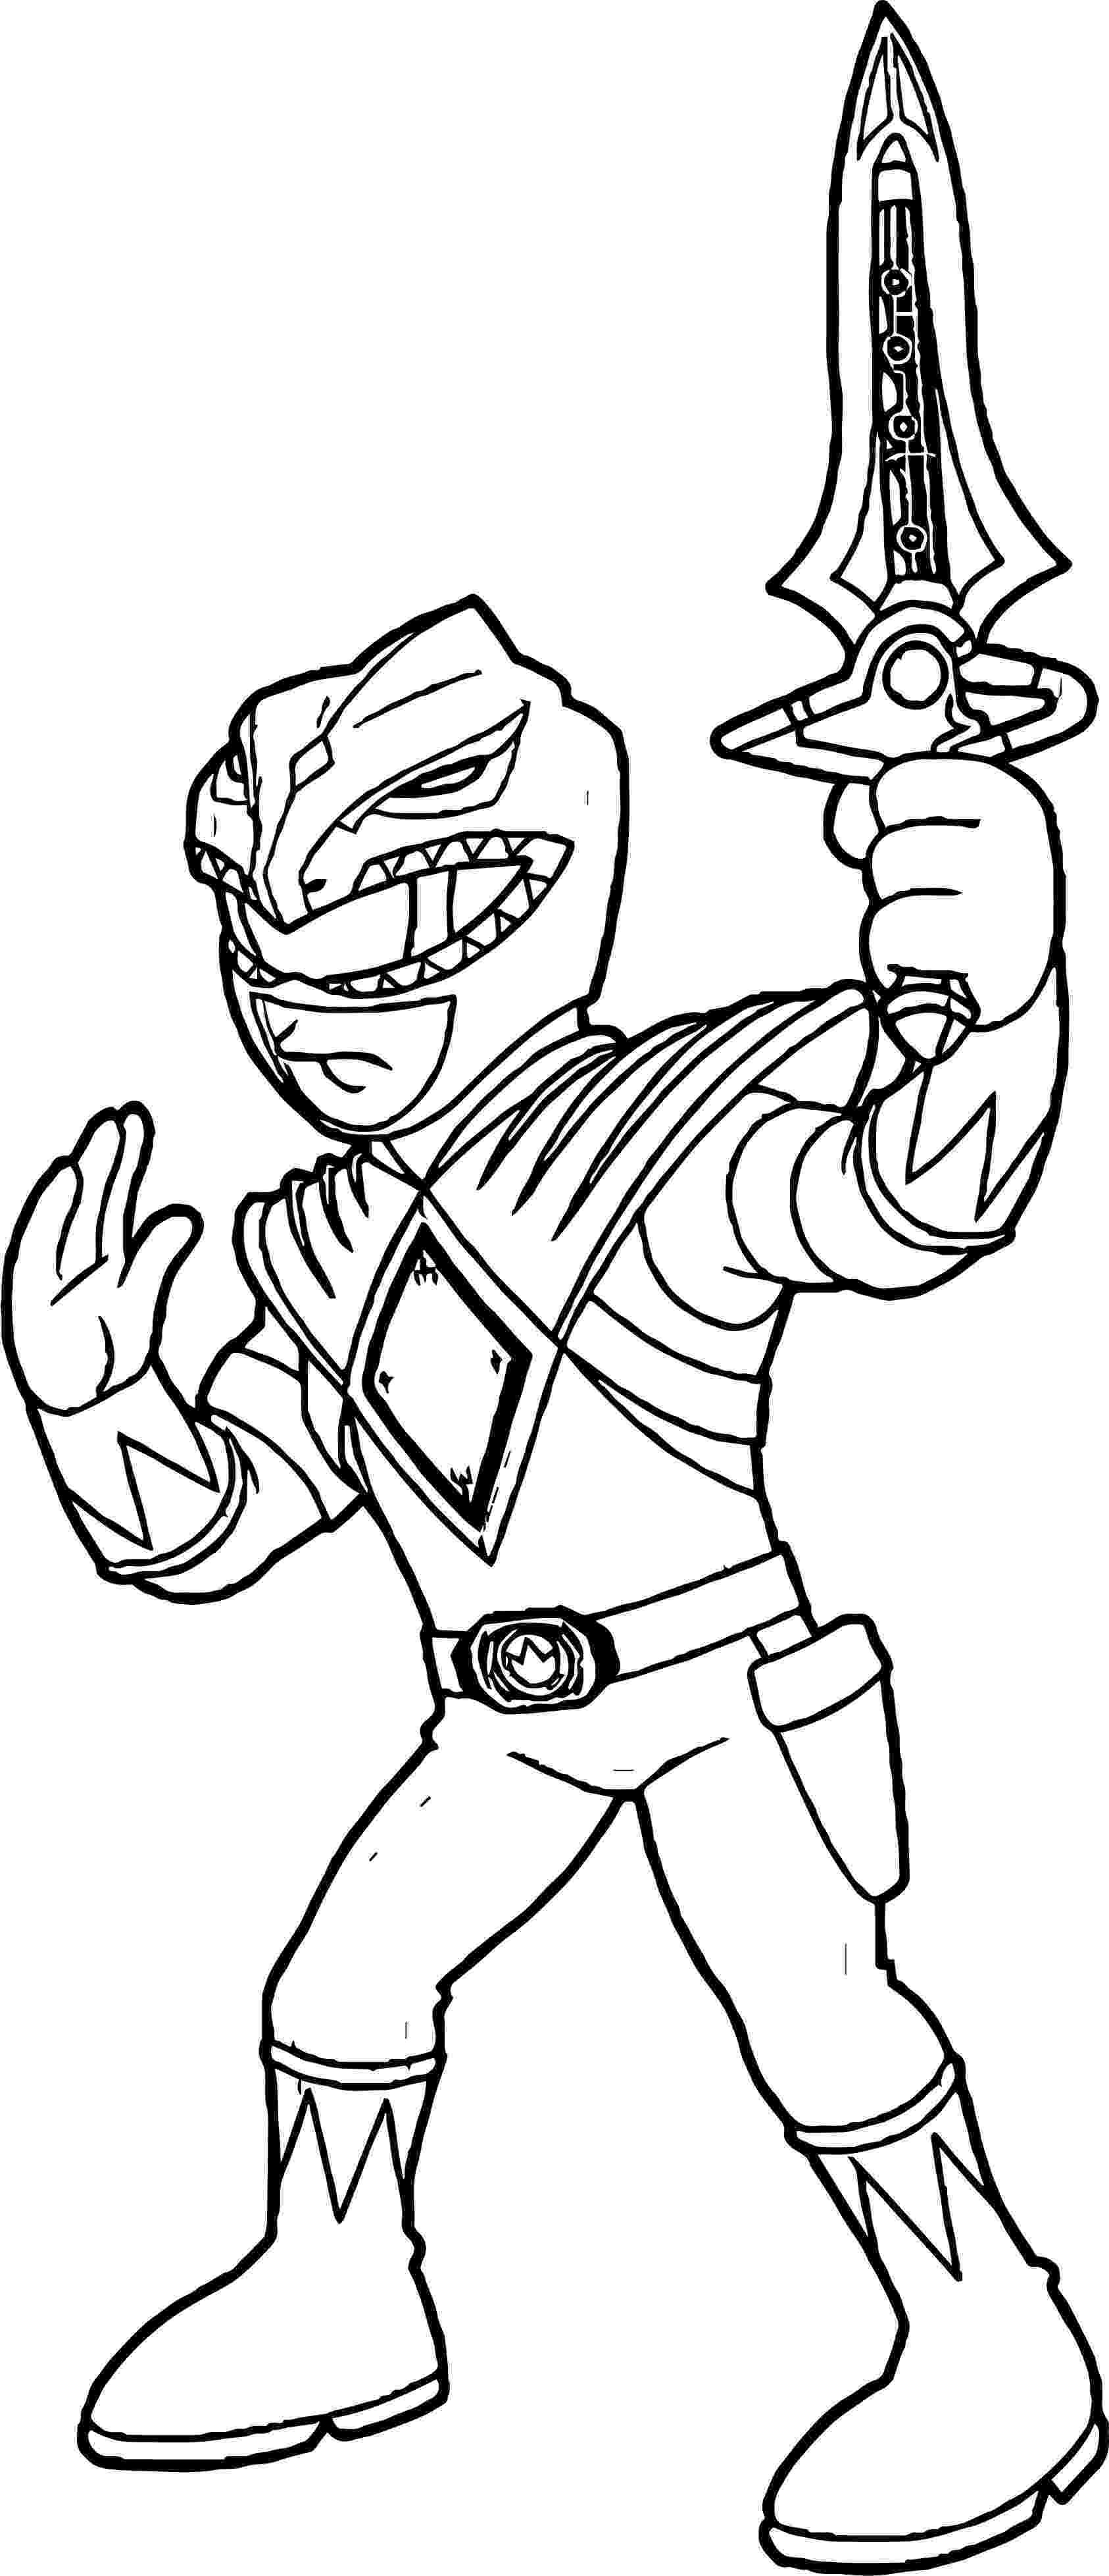 power rangers coloring pages power rangers white ranger coloring page wecoloringpagecom rangers coloring pages power